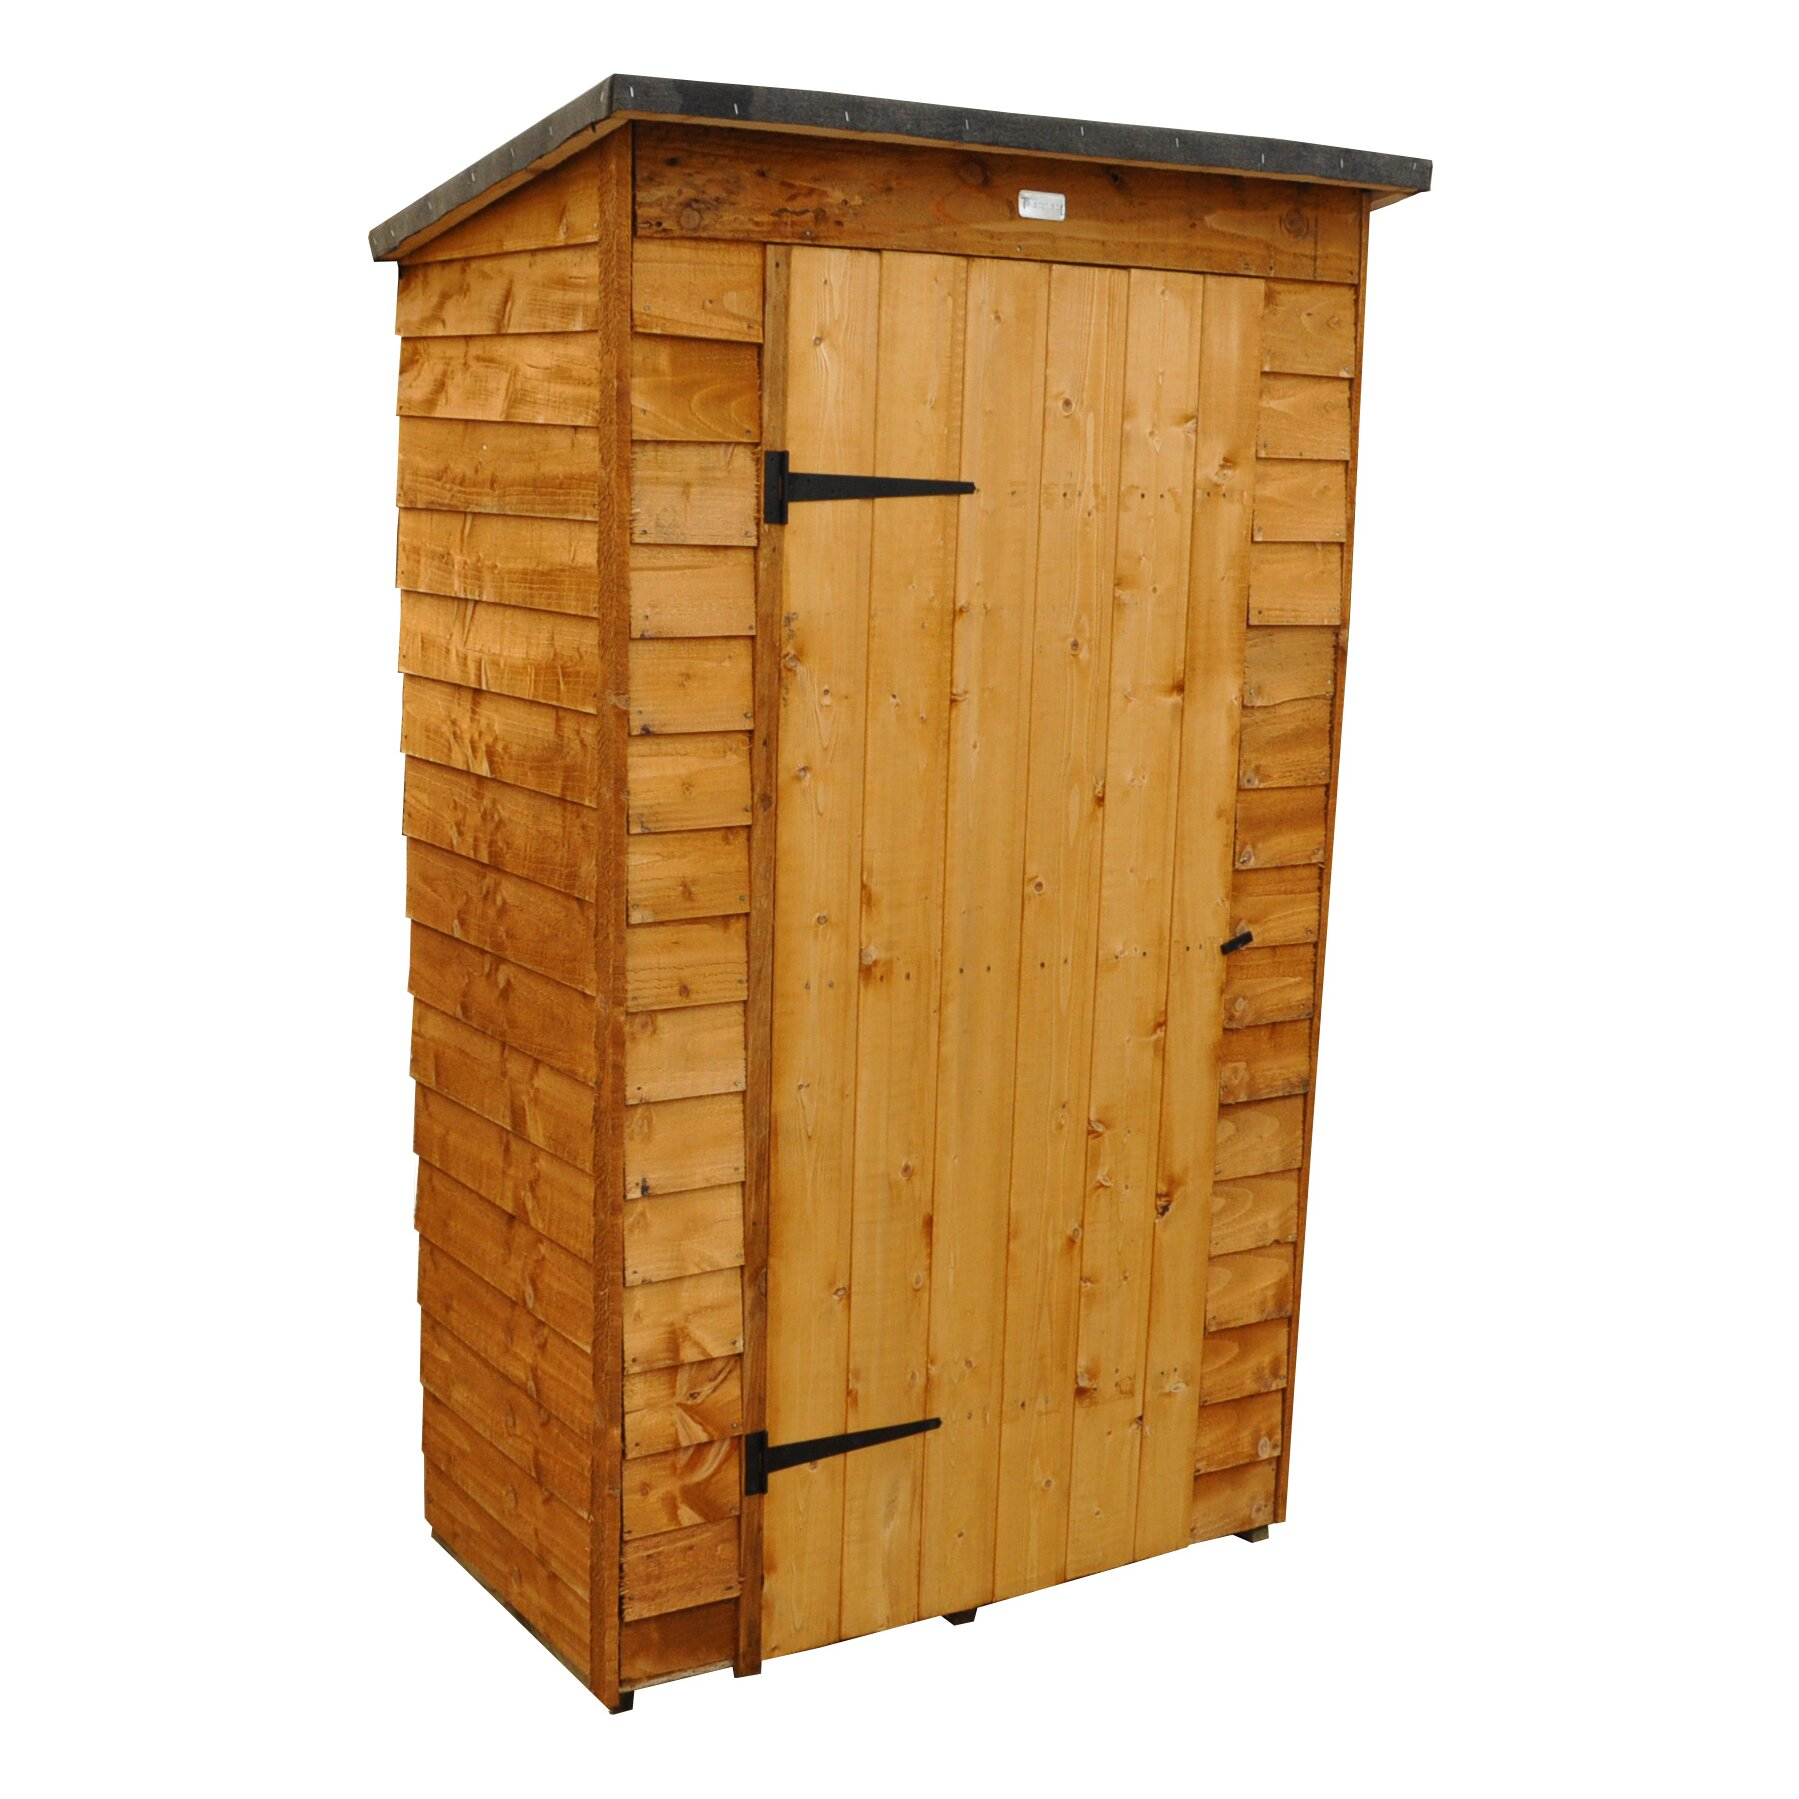 Forest garden 4 x 2 wooden tool shed reviews wayfair uk for Garden shed 4 x 2